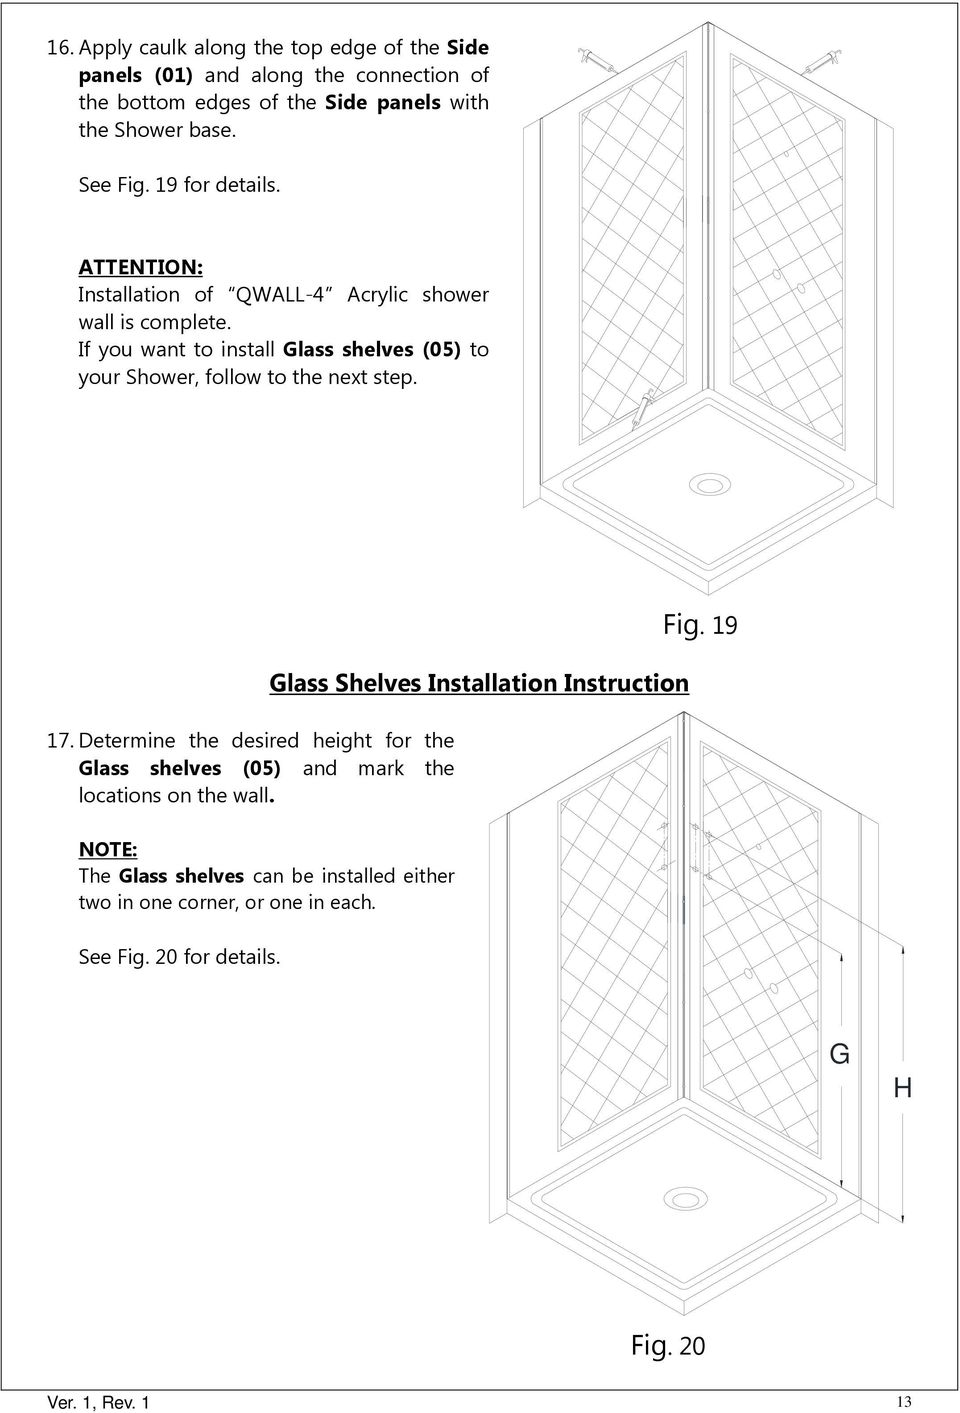 If you want to install Glass shelves (05) to your Shower, follow to the next step. 7.